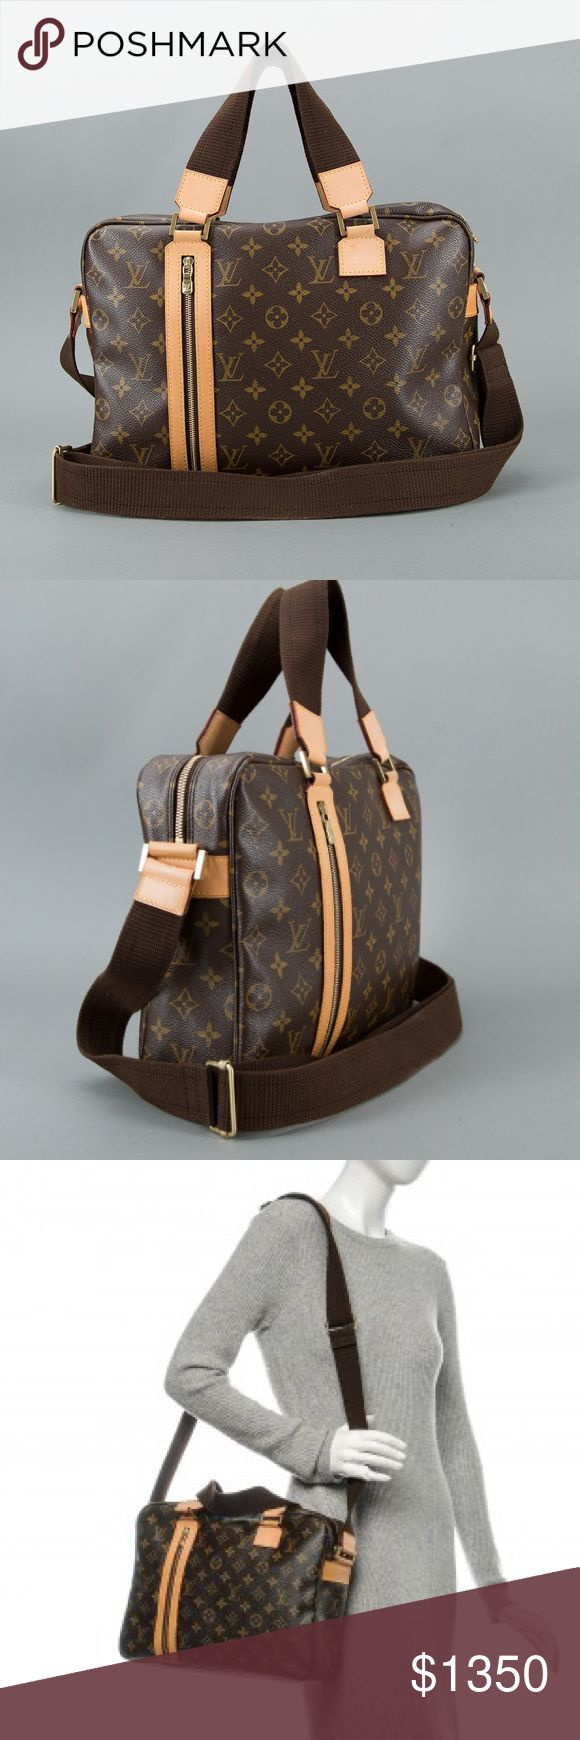 """Louis Vuitton Monogram Sac Bosphore Messenger Bag Gently Used-- Gently Oxodized Material: Monogram coated canvas with natural cowhide vachetta leather Origin: Spain Production Year: 2007 Date/Authenticity Code: CA1057 Measurements: 14"""" L x 3.5"""" W x 10"""" H Exterior Pockets: One zip pocket Interior Pockets: One flat pocket, one cell phone pocket Handles: Double flat canvas handles and long adjustable shoulder strap Handle Drop: 6"""" and 23"""" adjustable Closure/Opening: Double zip closure Interior…"""